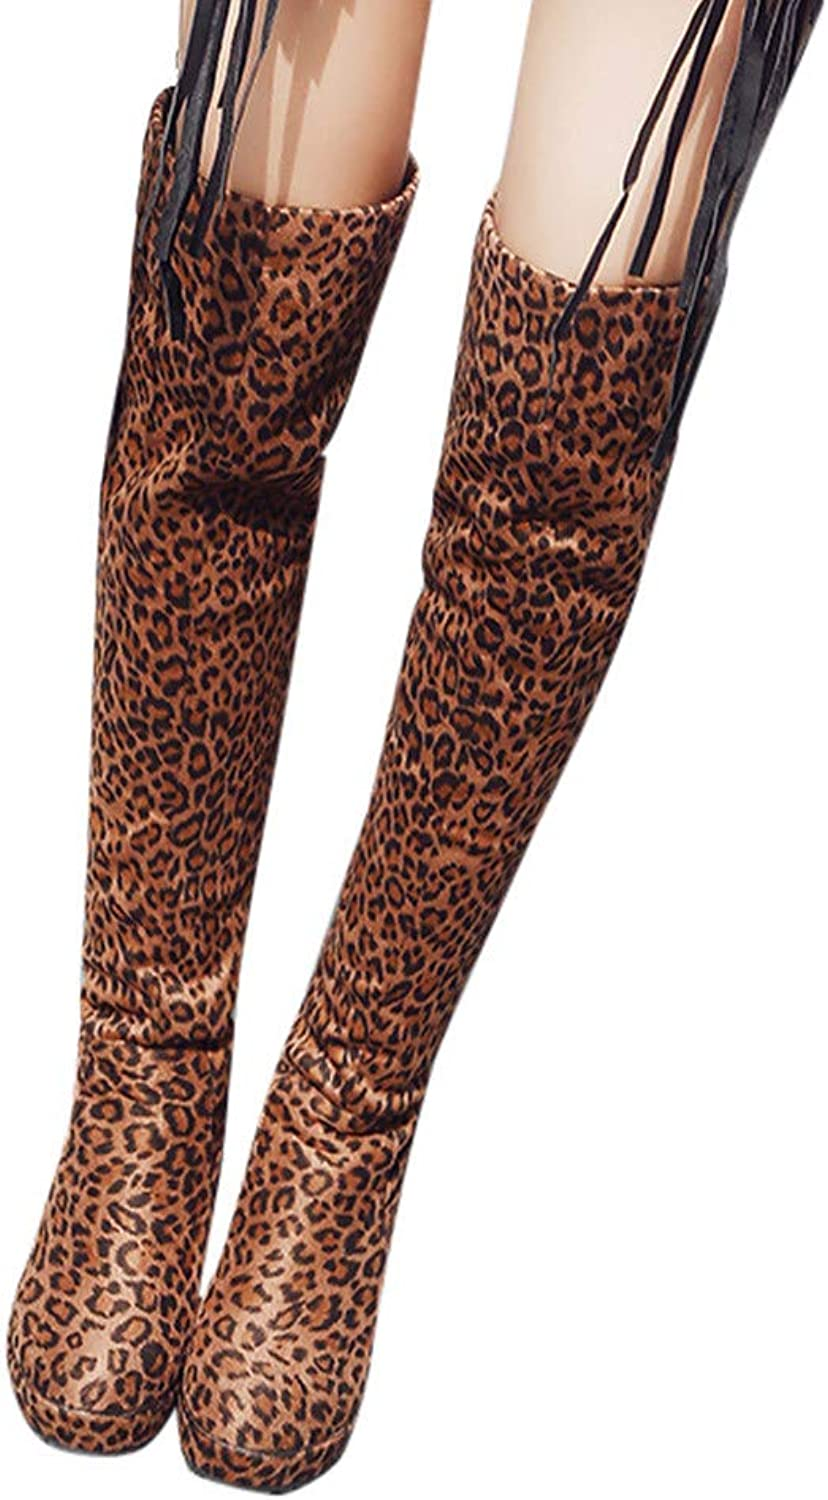 Fashion Girls Women's Thigh High Stretch Boots, Best Festive Gift Couple shoes, Big Campous, Christmas Party